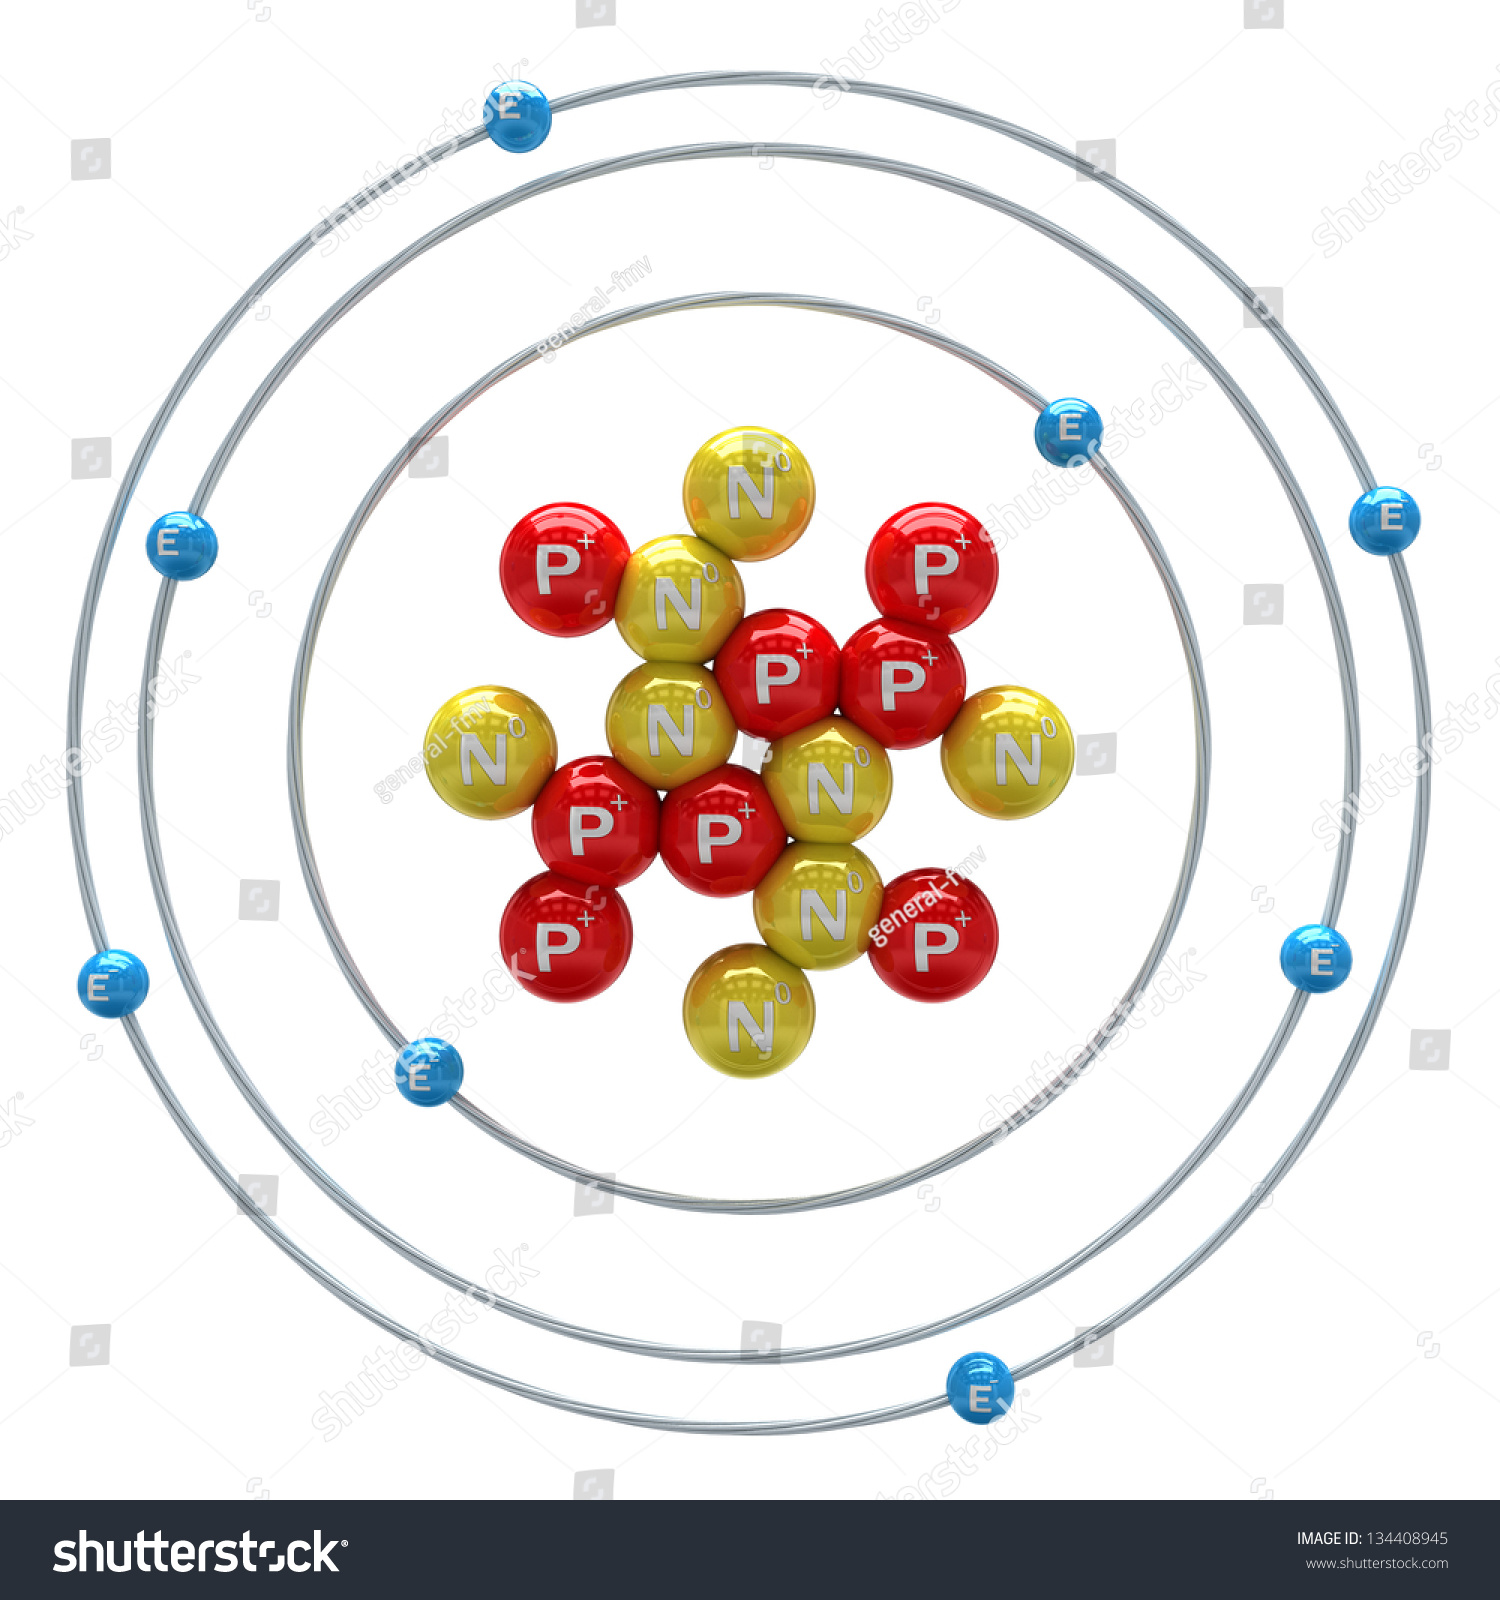 Bohr Diagram For Beryllium Trusted Wiring Diagrams Oxygen Atom Model Atomic Which Are Protons And Electrons S Shell